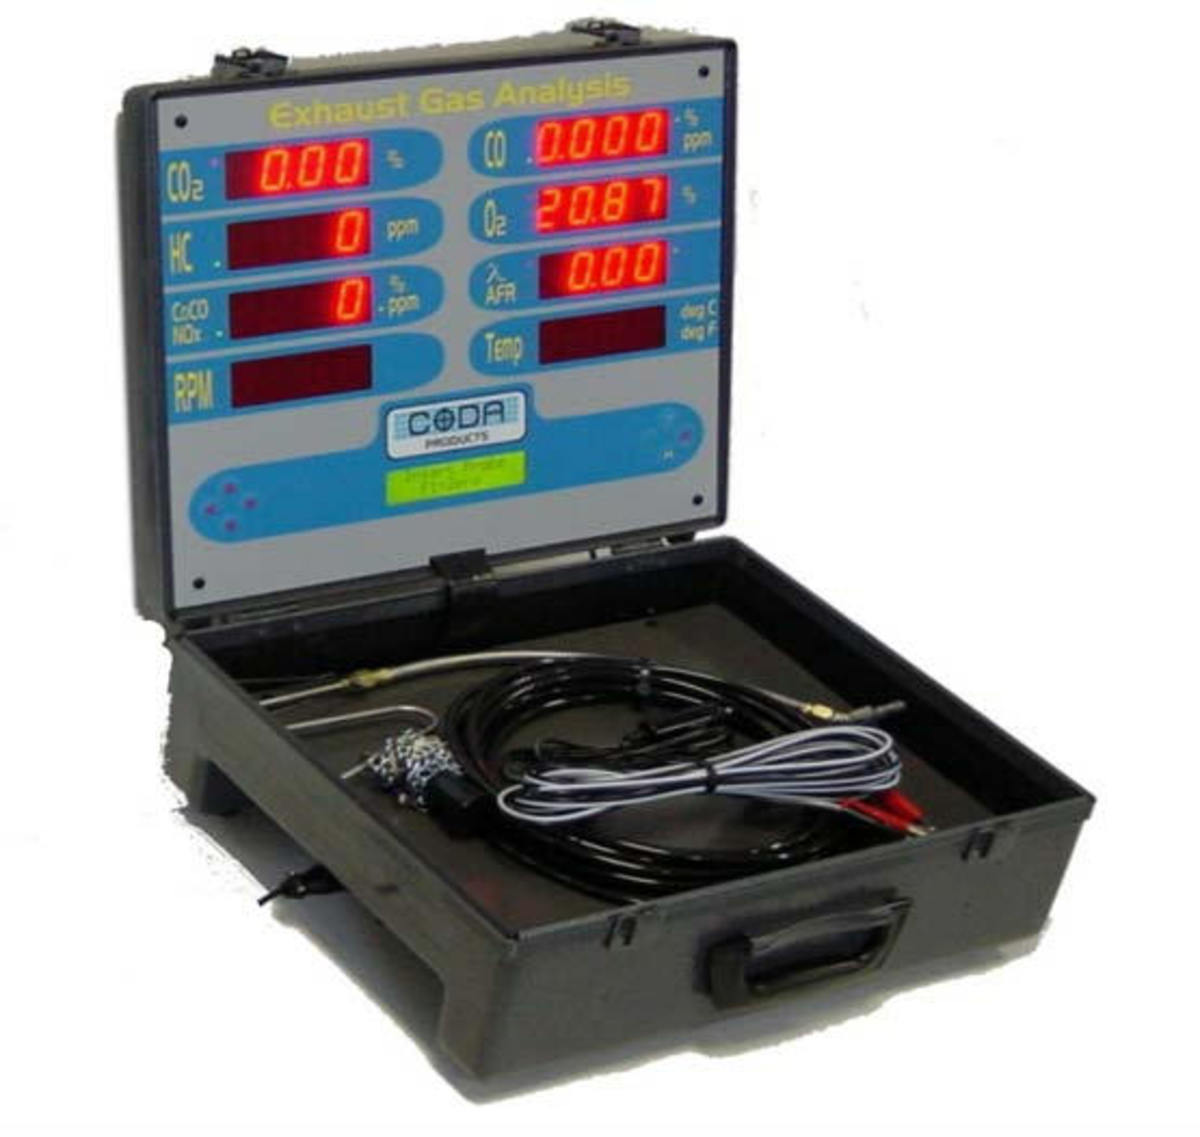 This is a modern portable 5 gas analyzer.